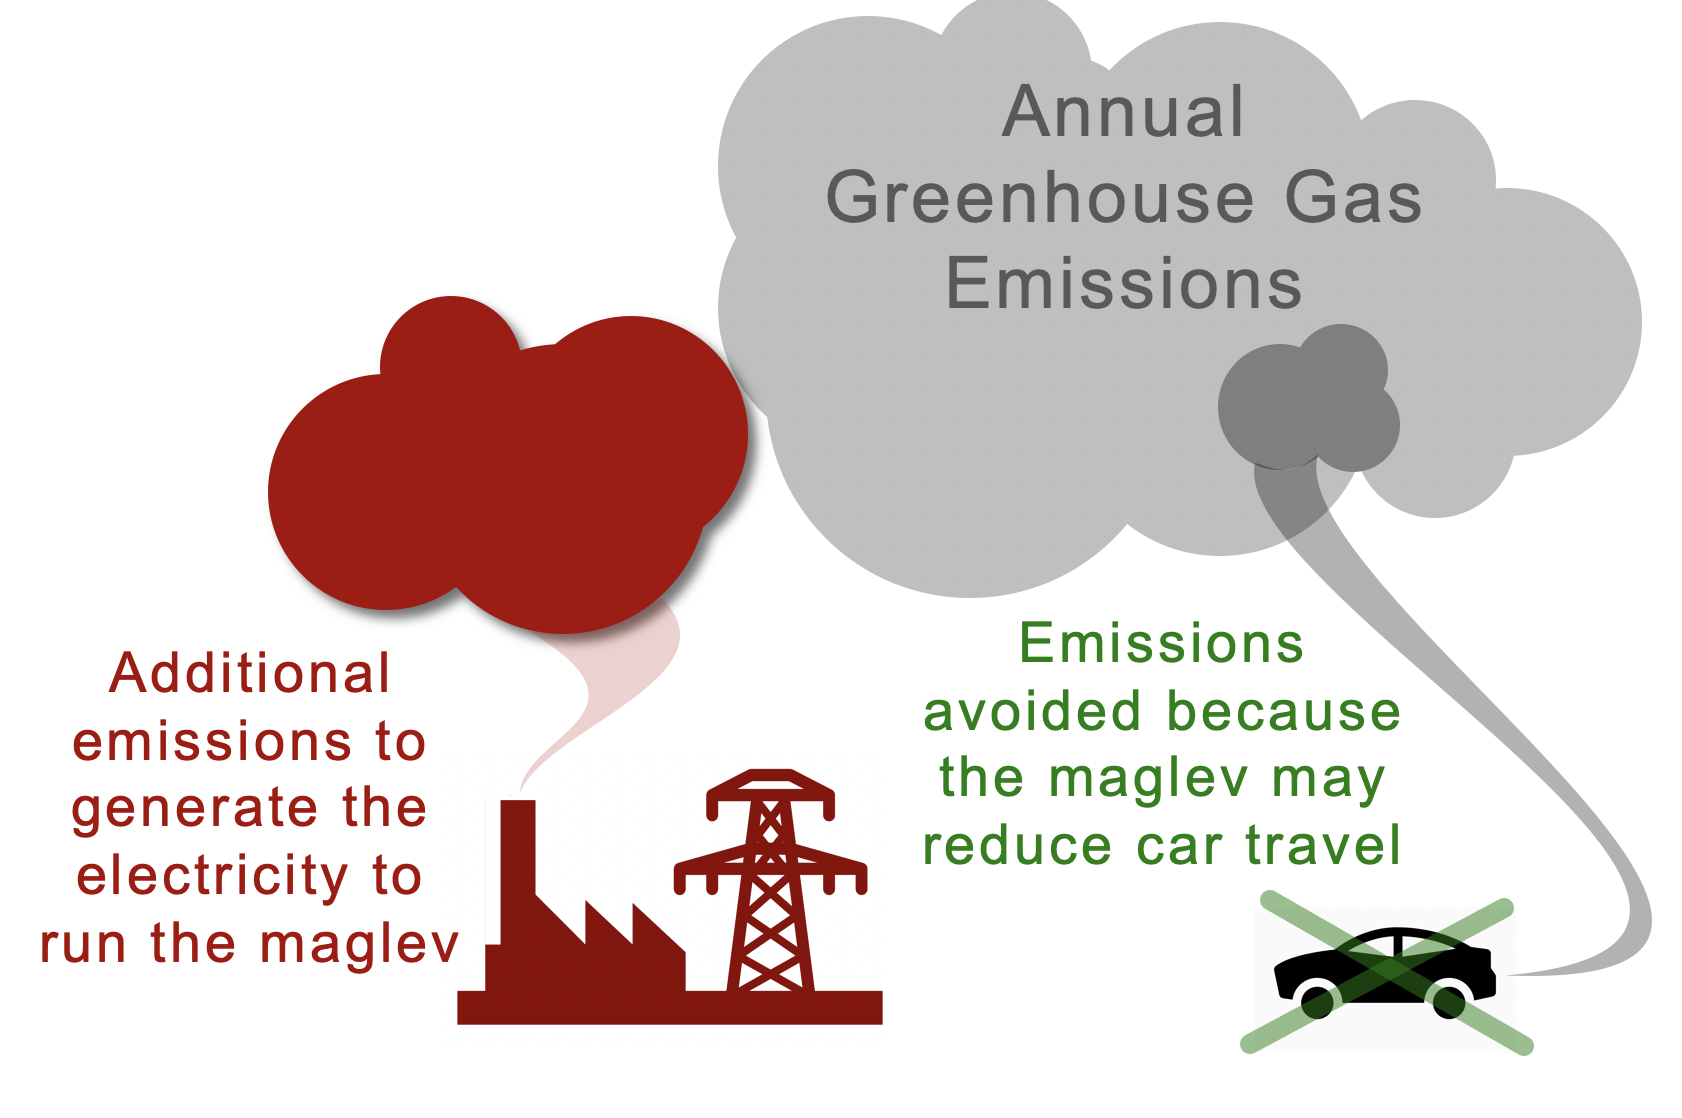 cartoon of net emissions from operating maglev